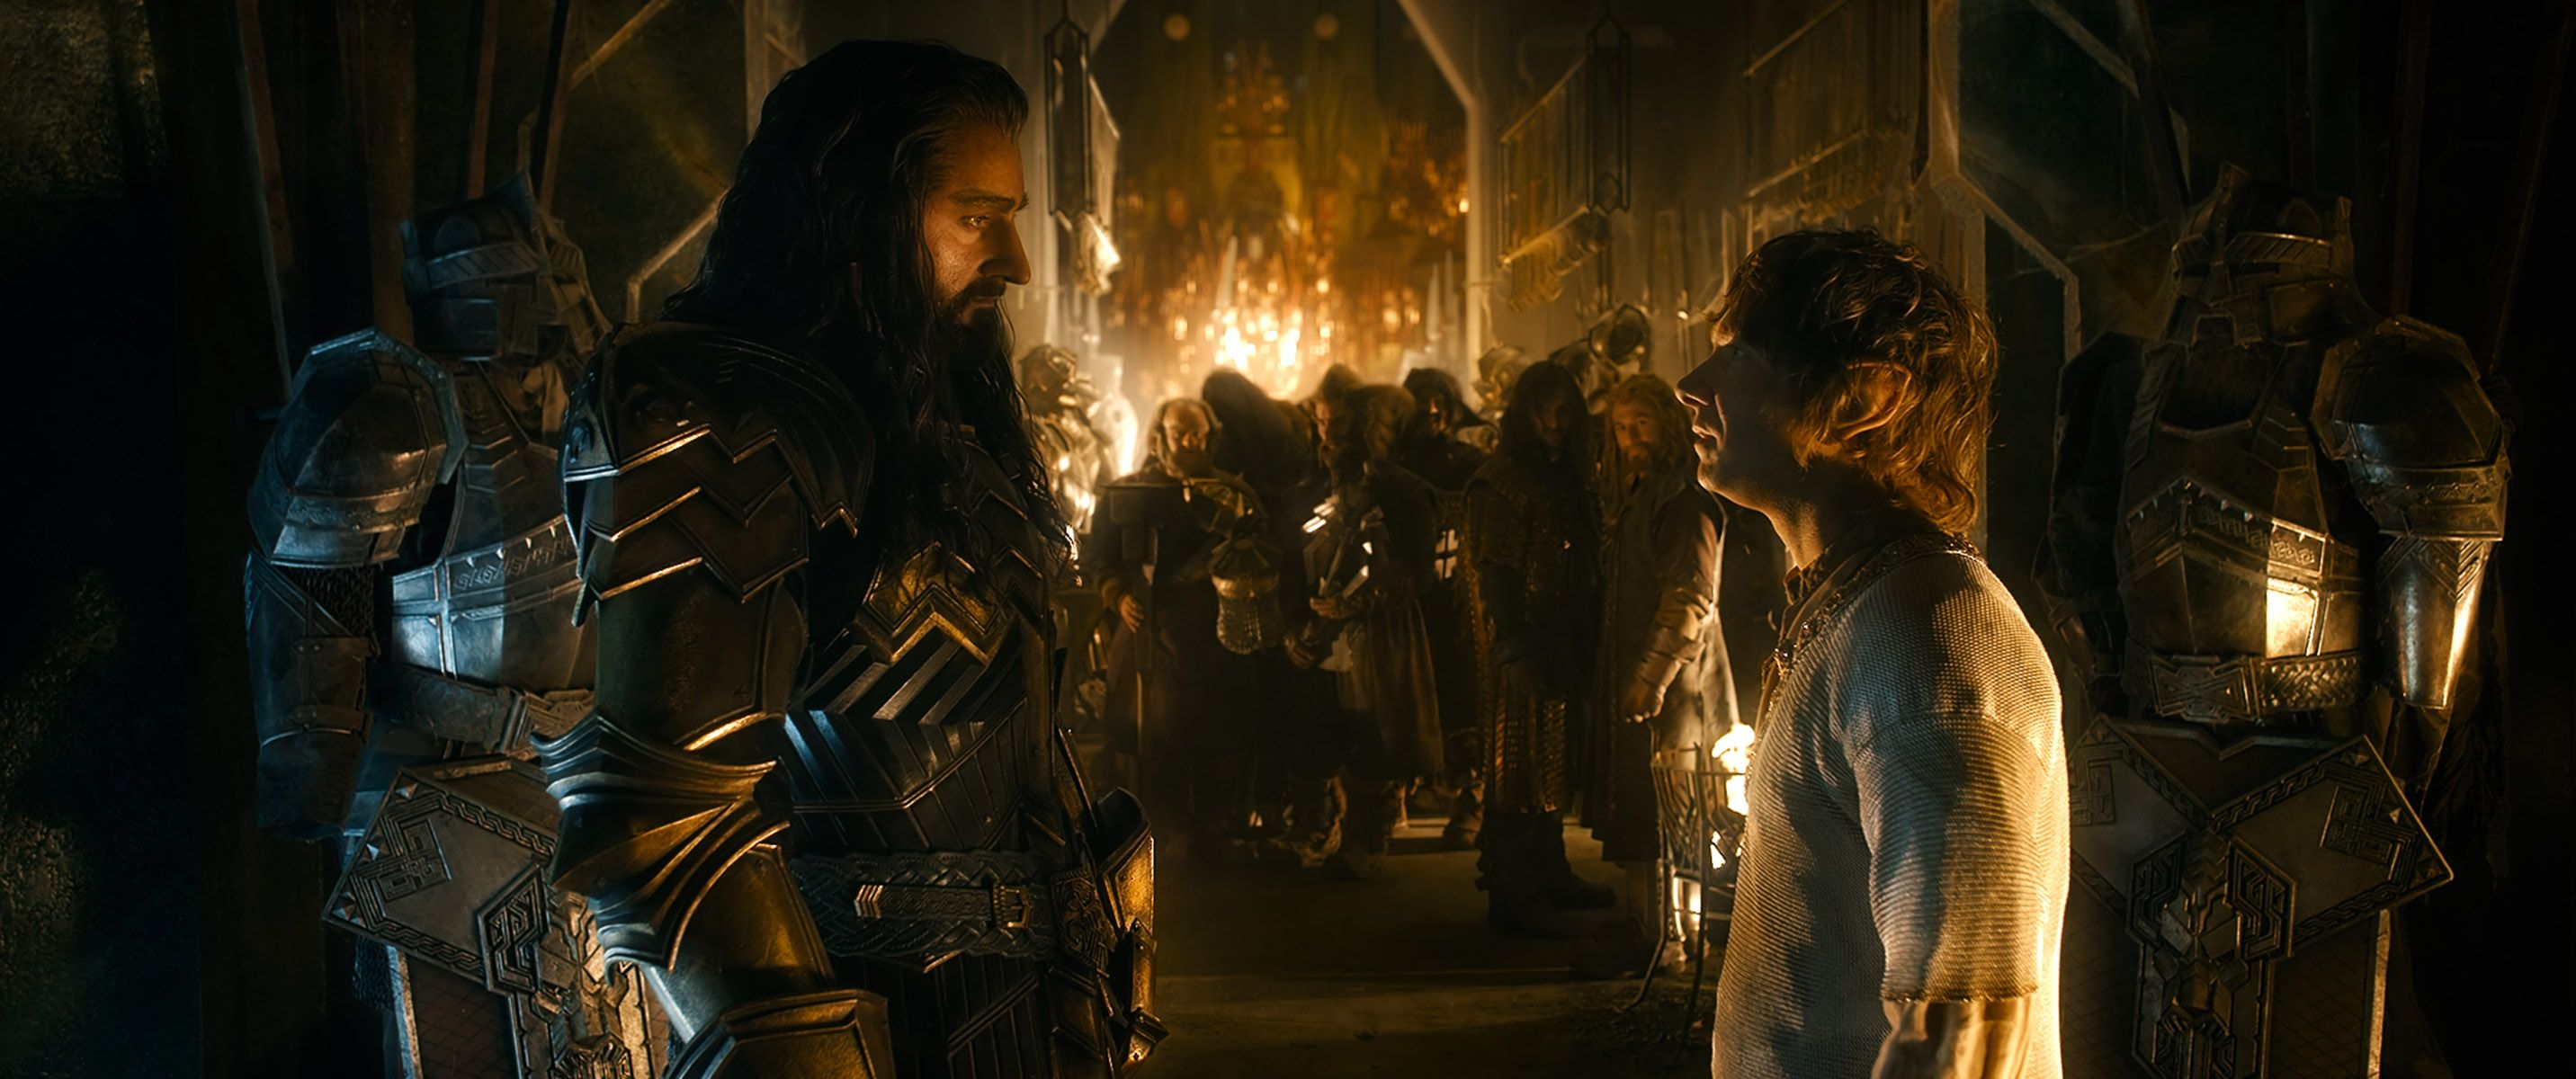 THE HOBBIT: THE BATTLE OF THE FIVE ARMIES Review | Collider